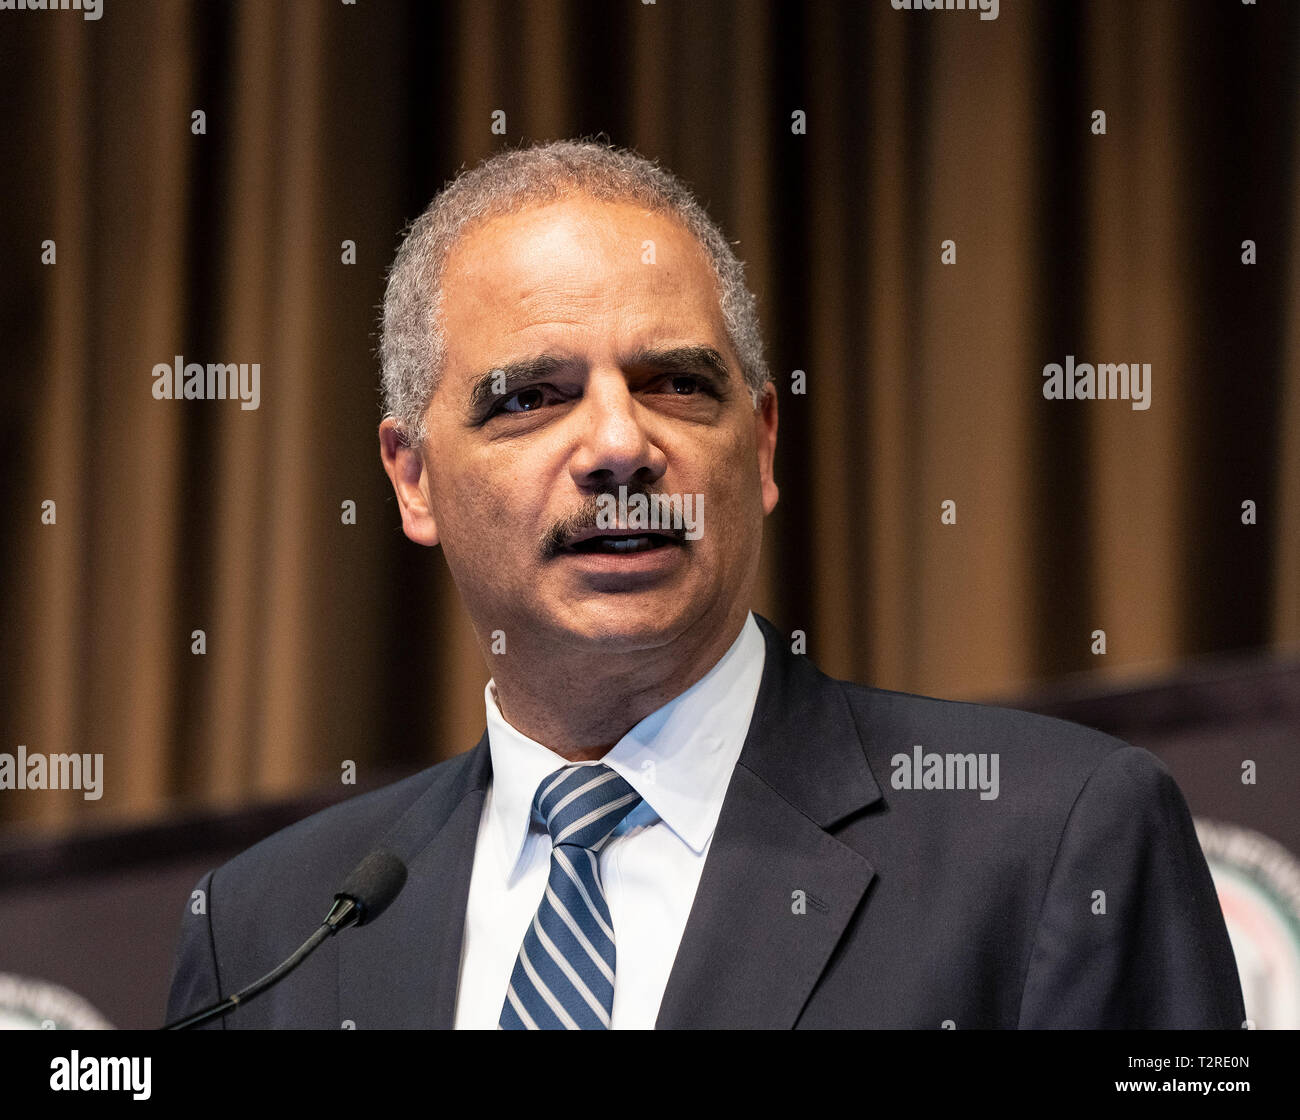 New York, United States  03rd Apr, 2019  82nd US Attorney